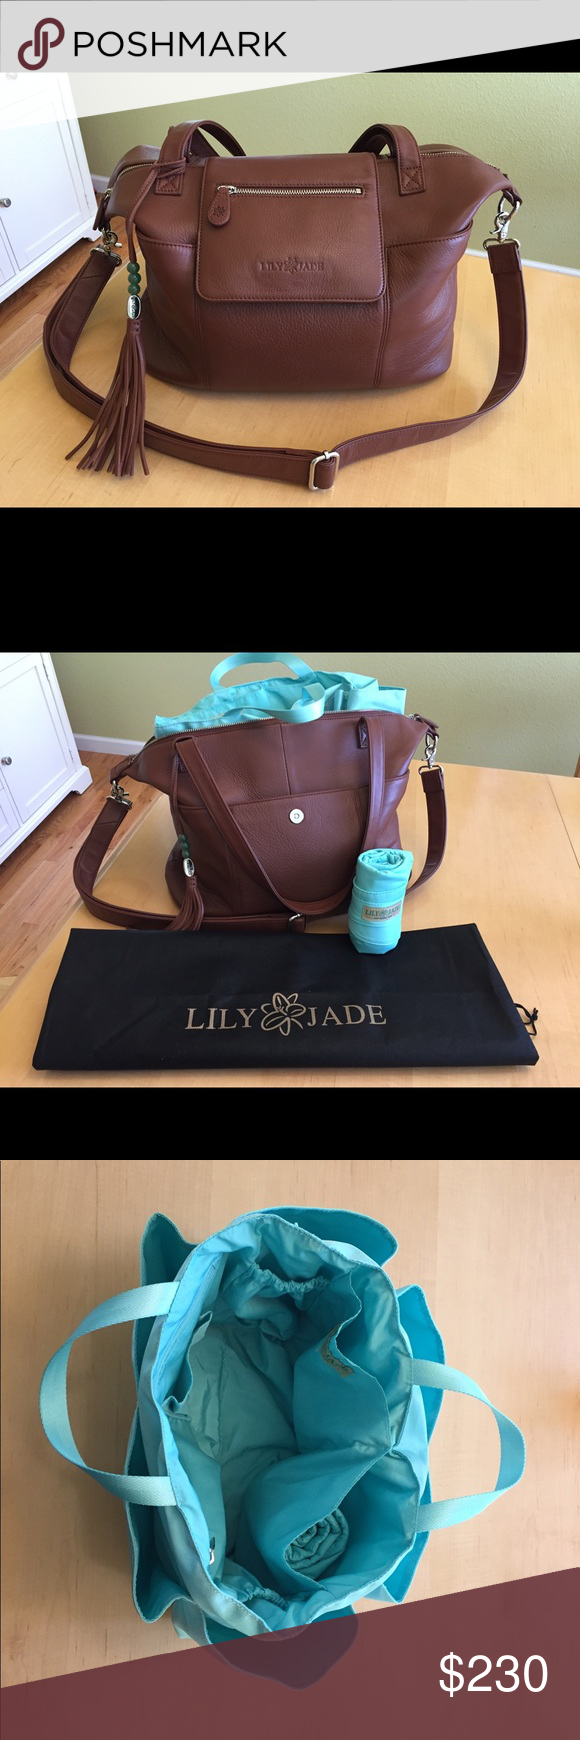 509e46197010 Lily Jade Madeline in Brandy Diaper Bag Beautiful bag! Very gently used and  in excellent condition! - Silver hardware - Converts to backpack -  Removable and ...